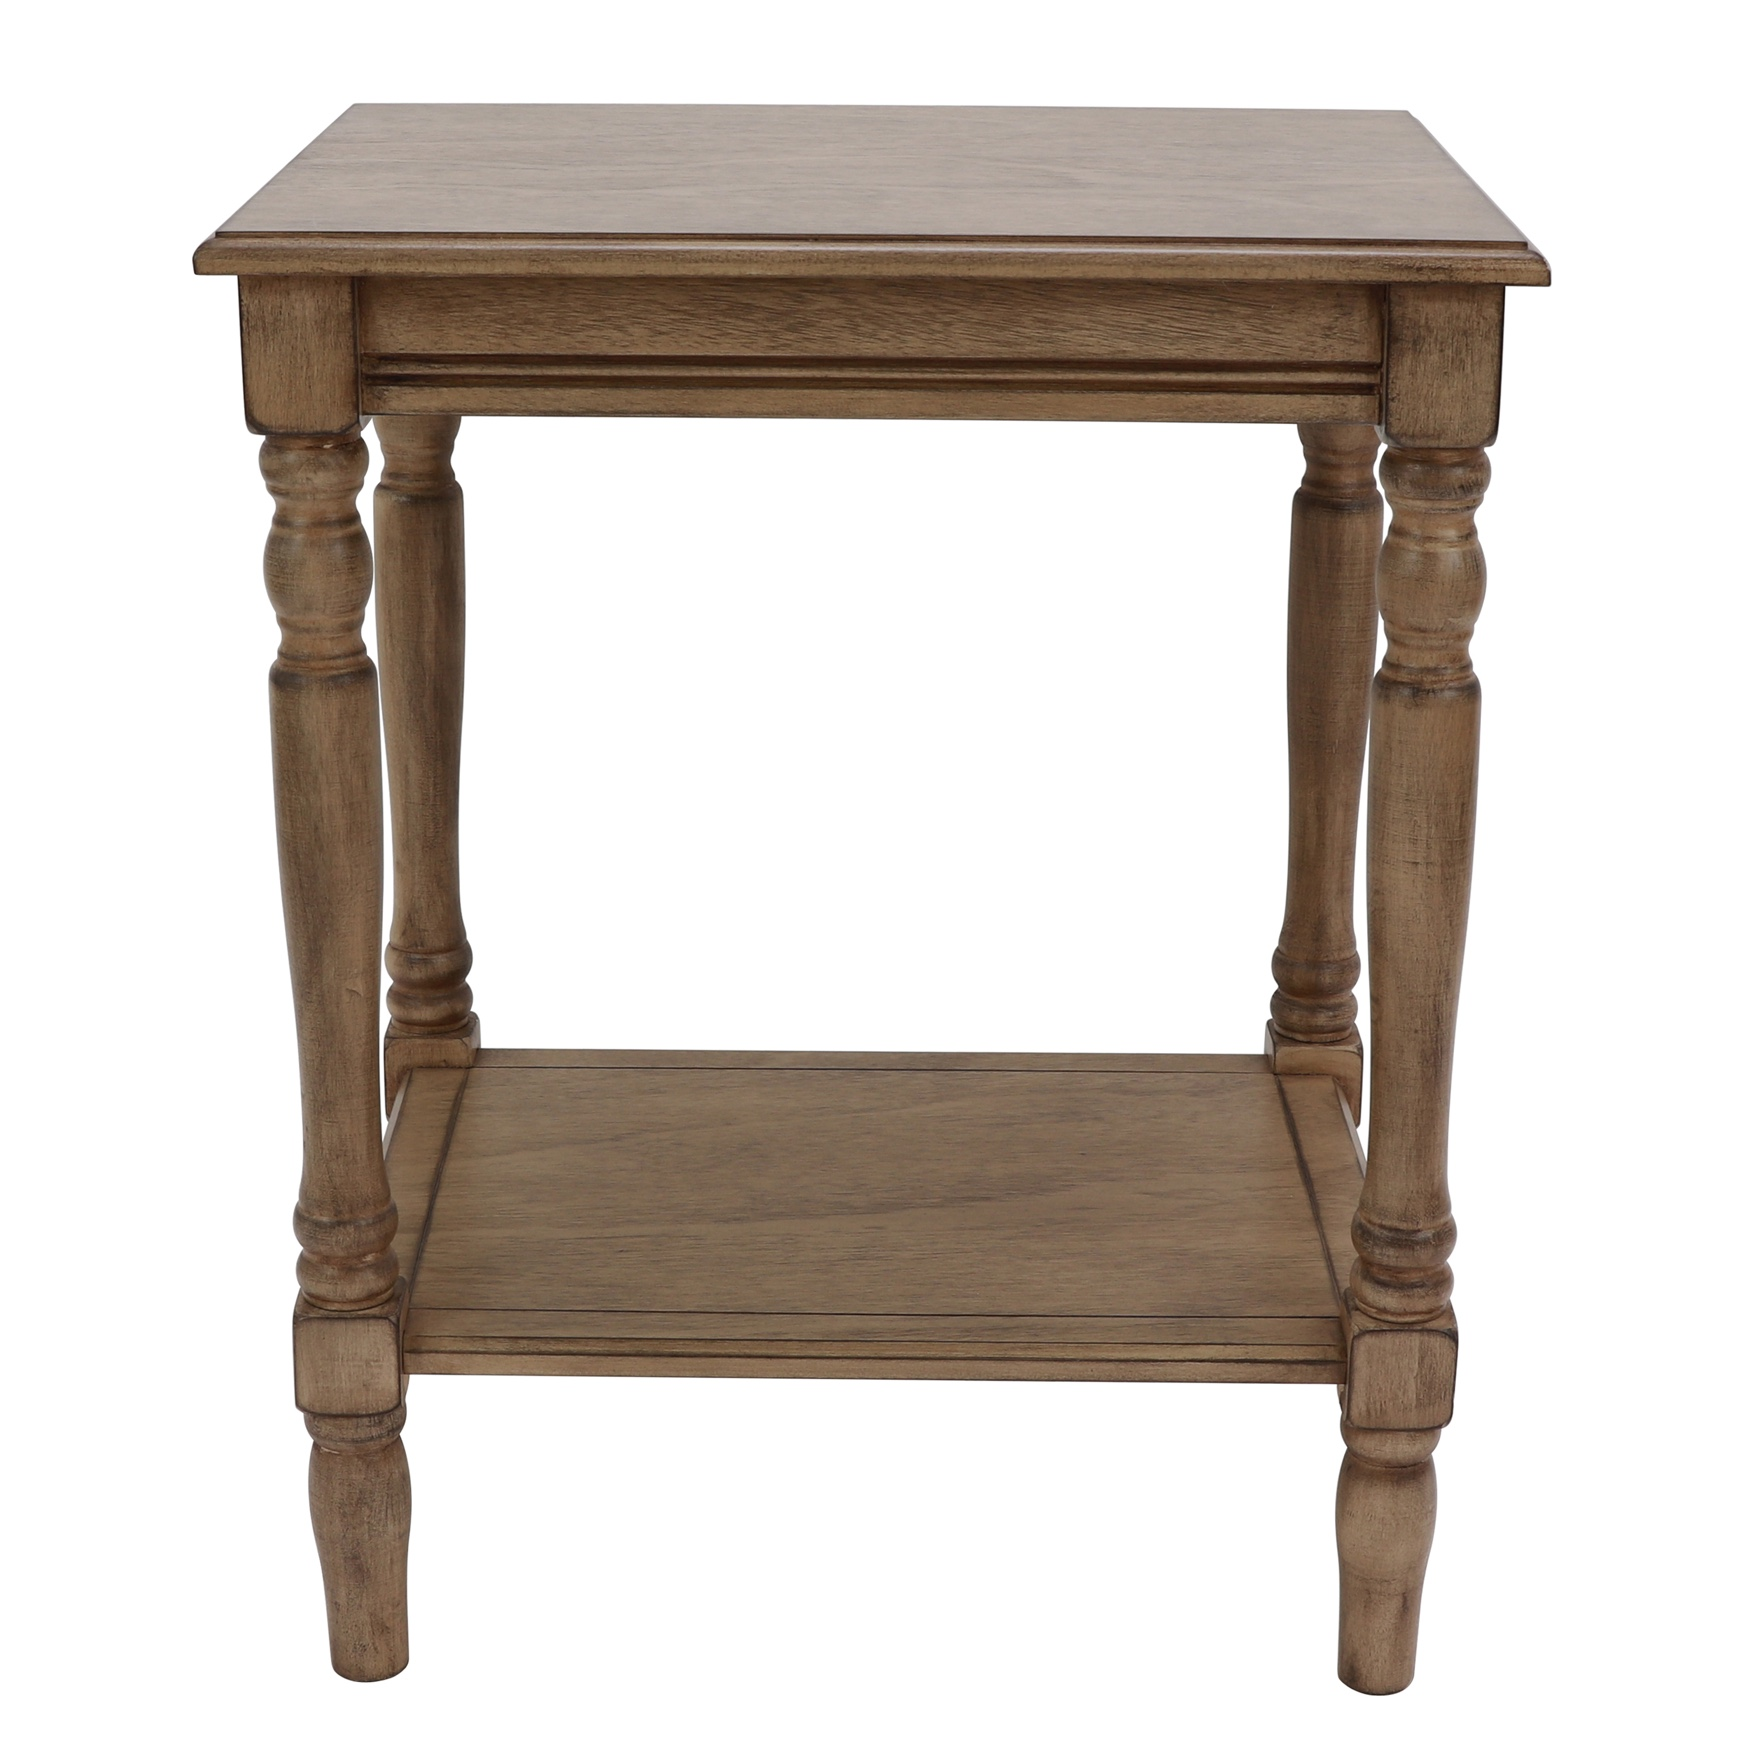 Sahara End Table , SAHARA